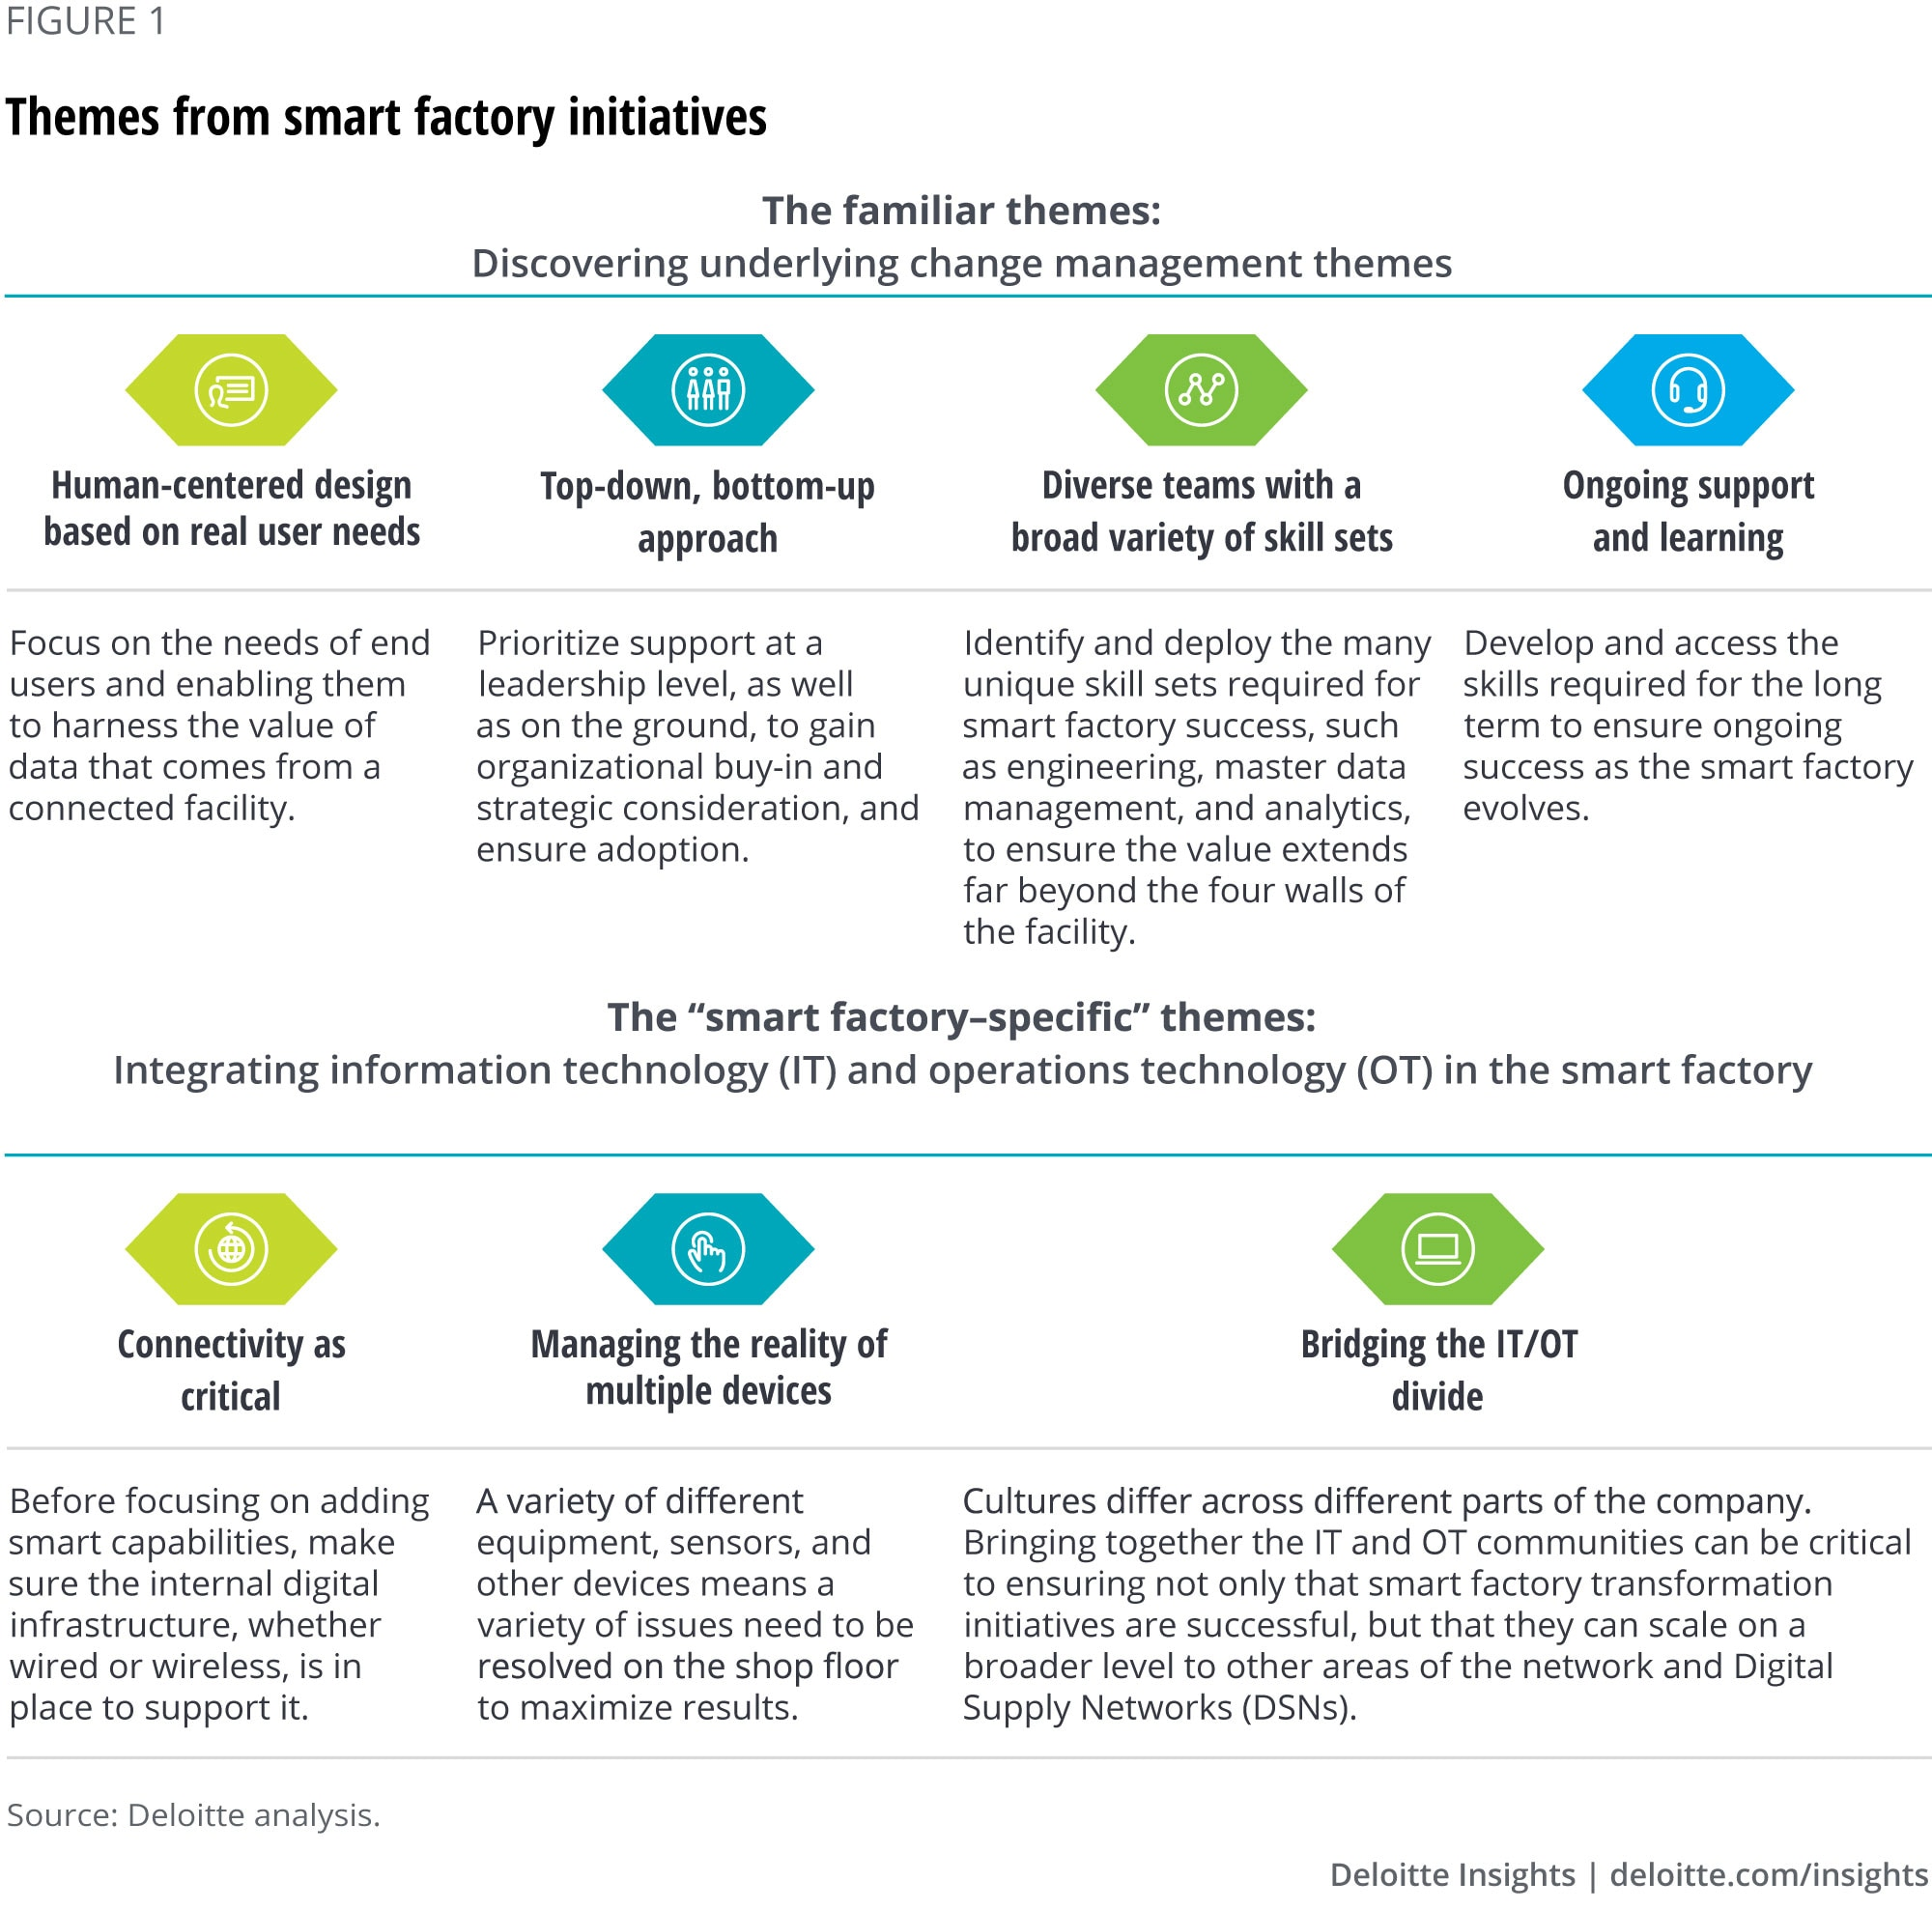 Themes from smart factory initiatives